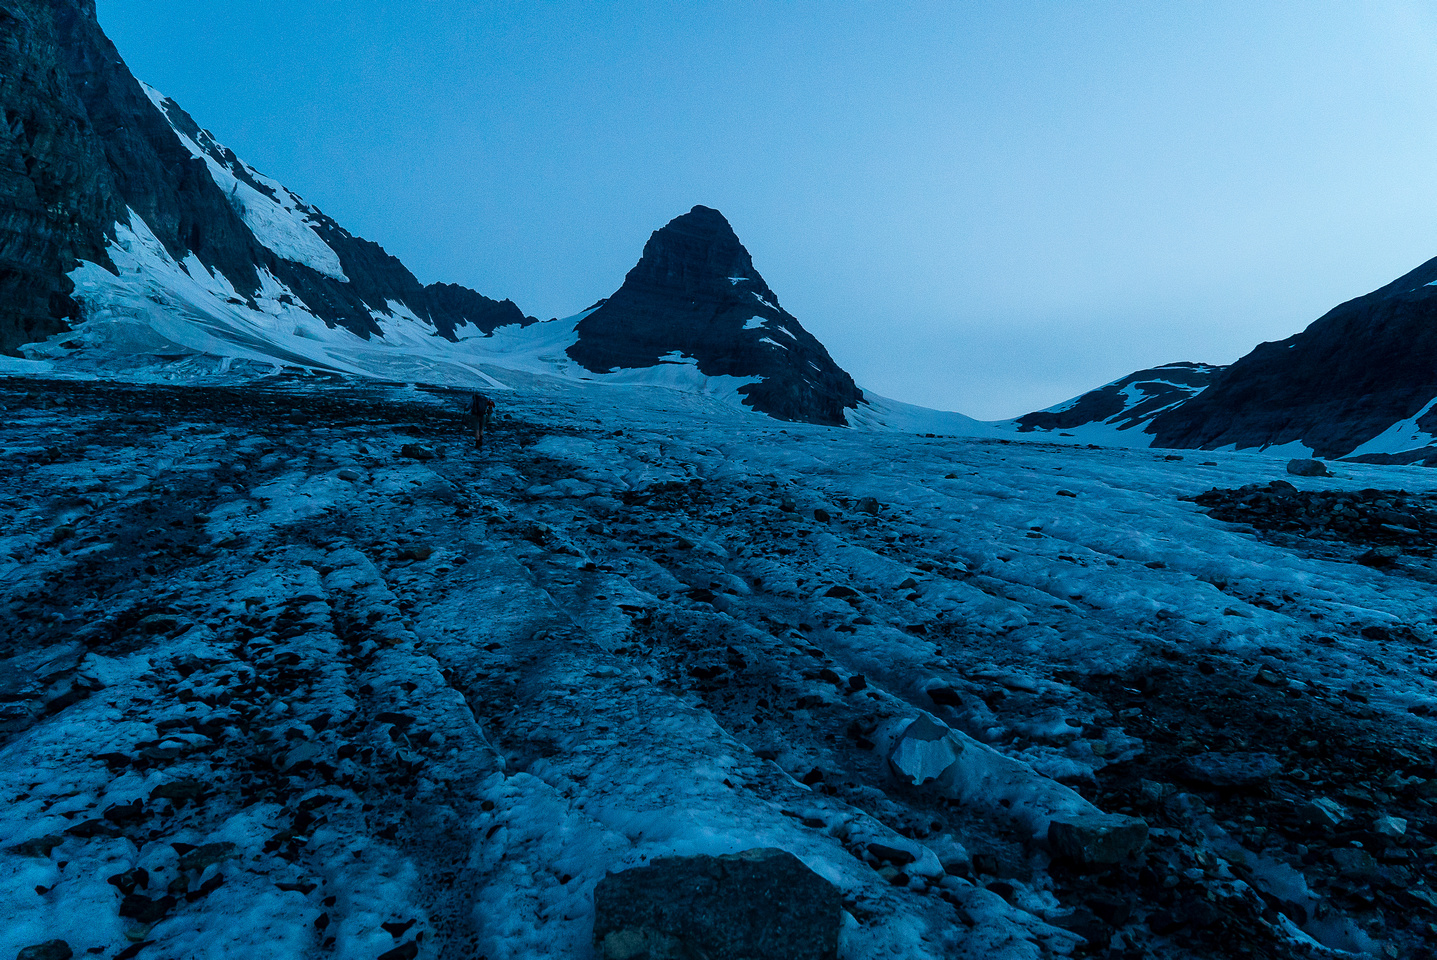 Hiking up the lower glacier towards Prince Albert.